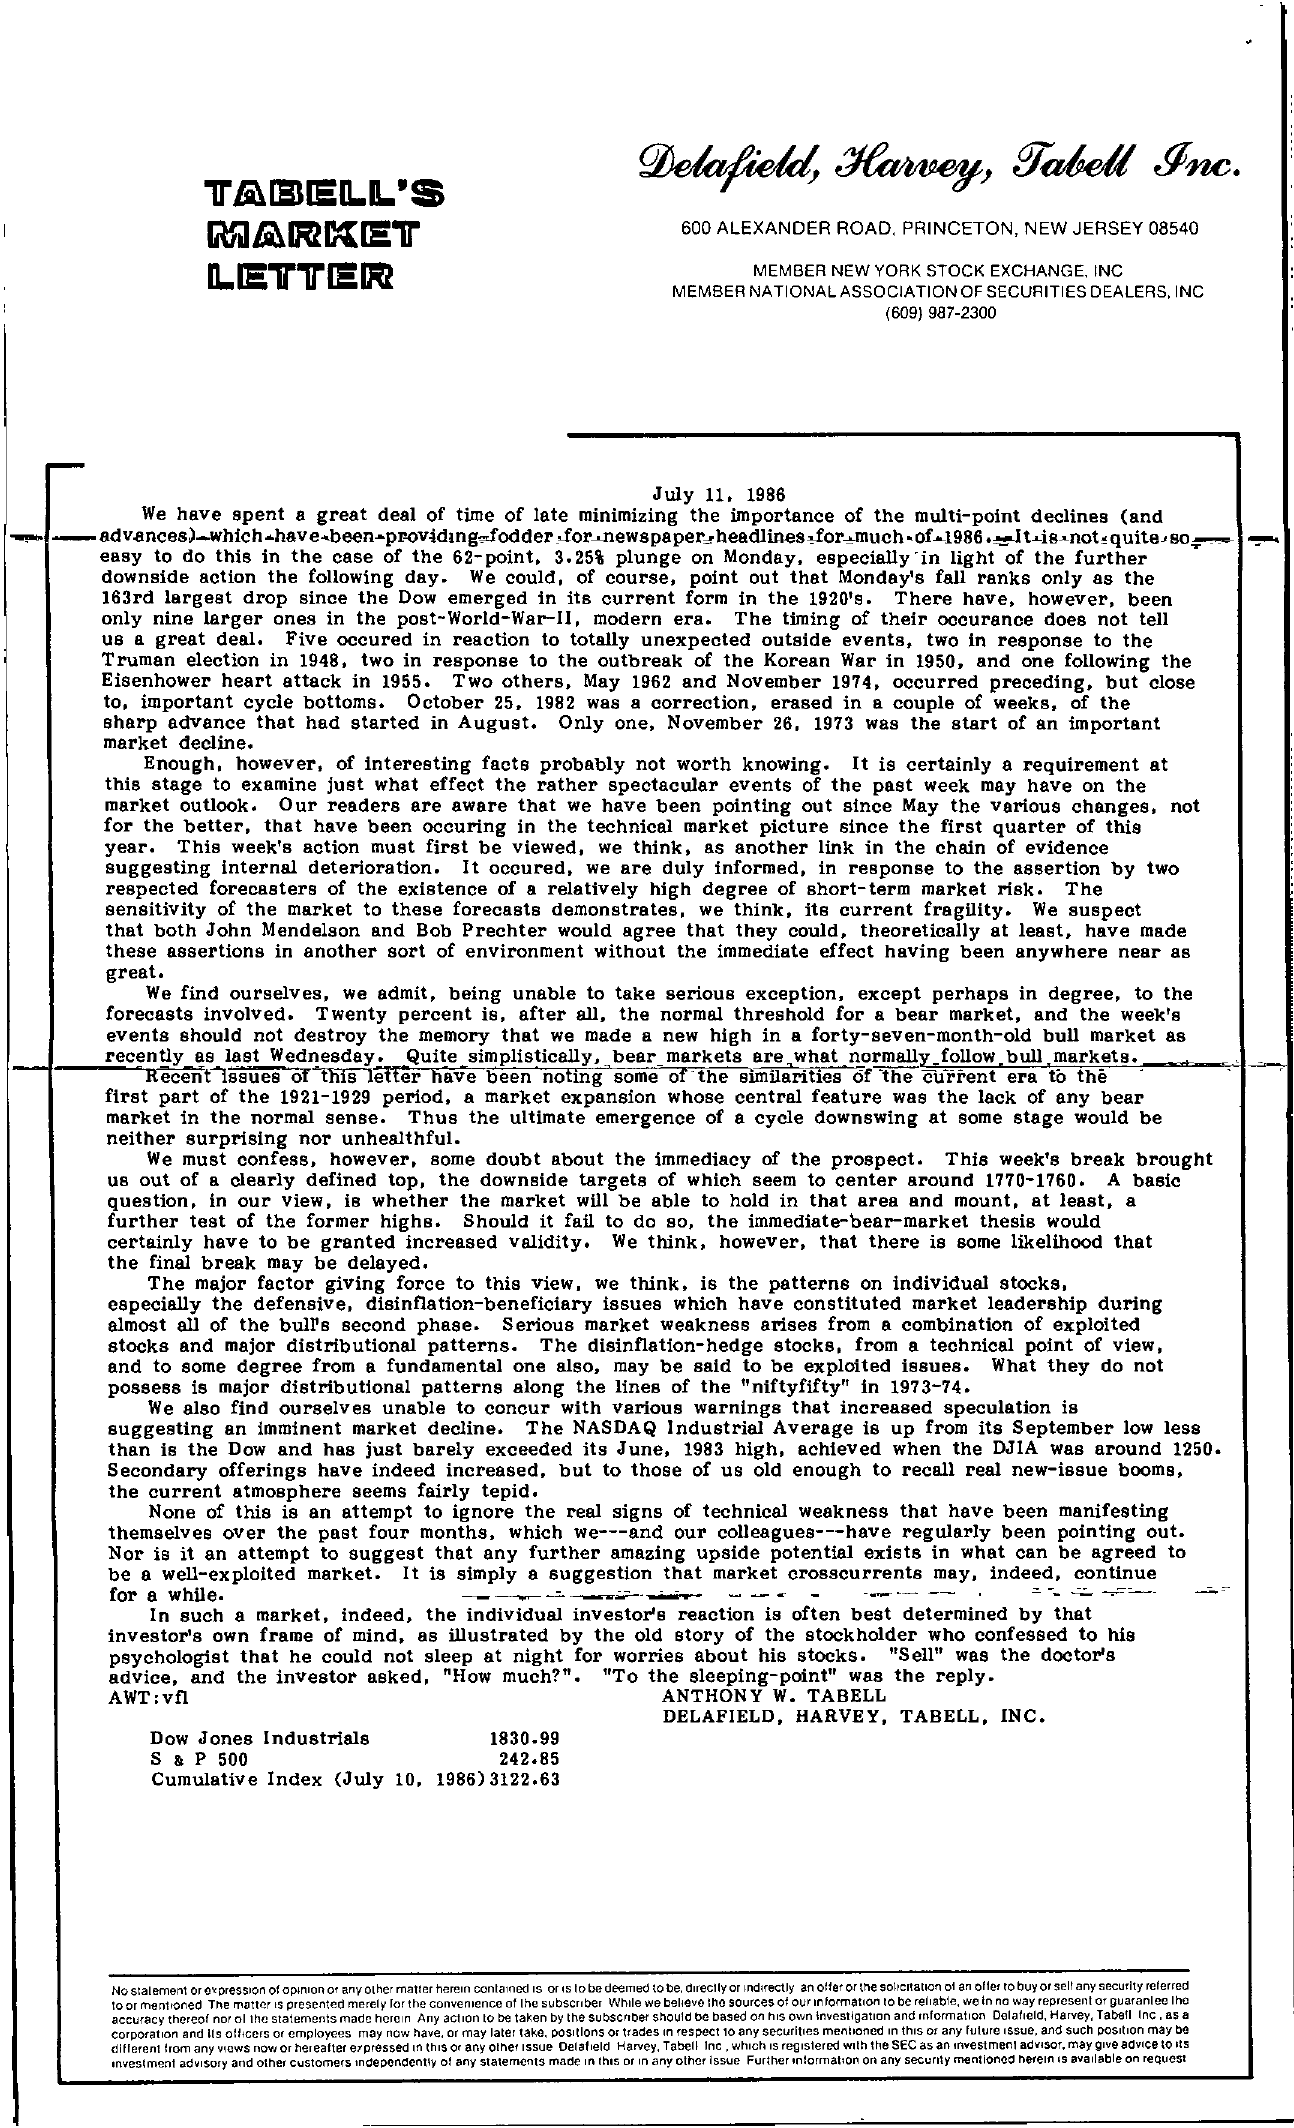 Tabell's Market Letter - July 11, 1986